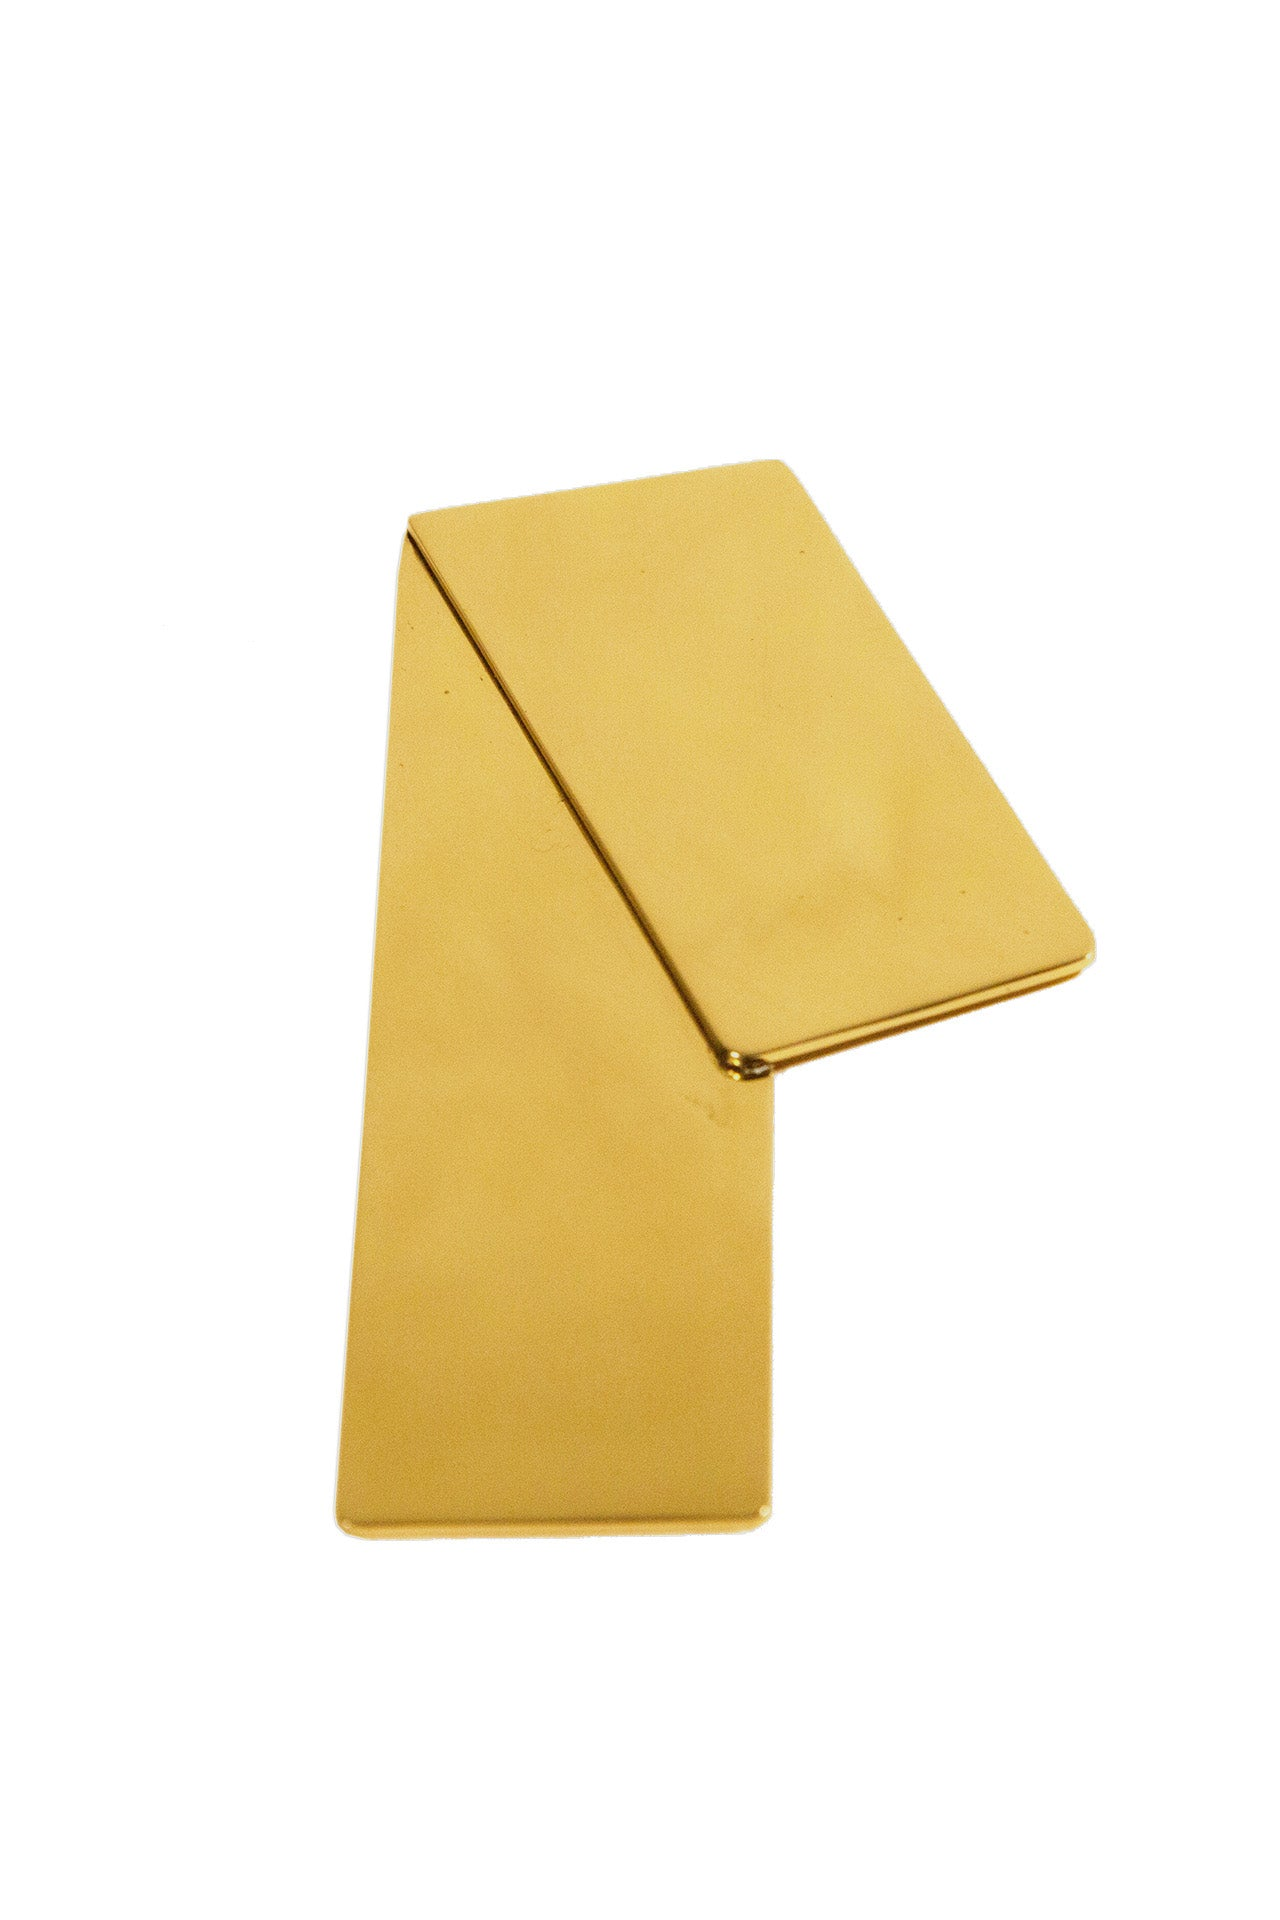 Folded Book Weights